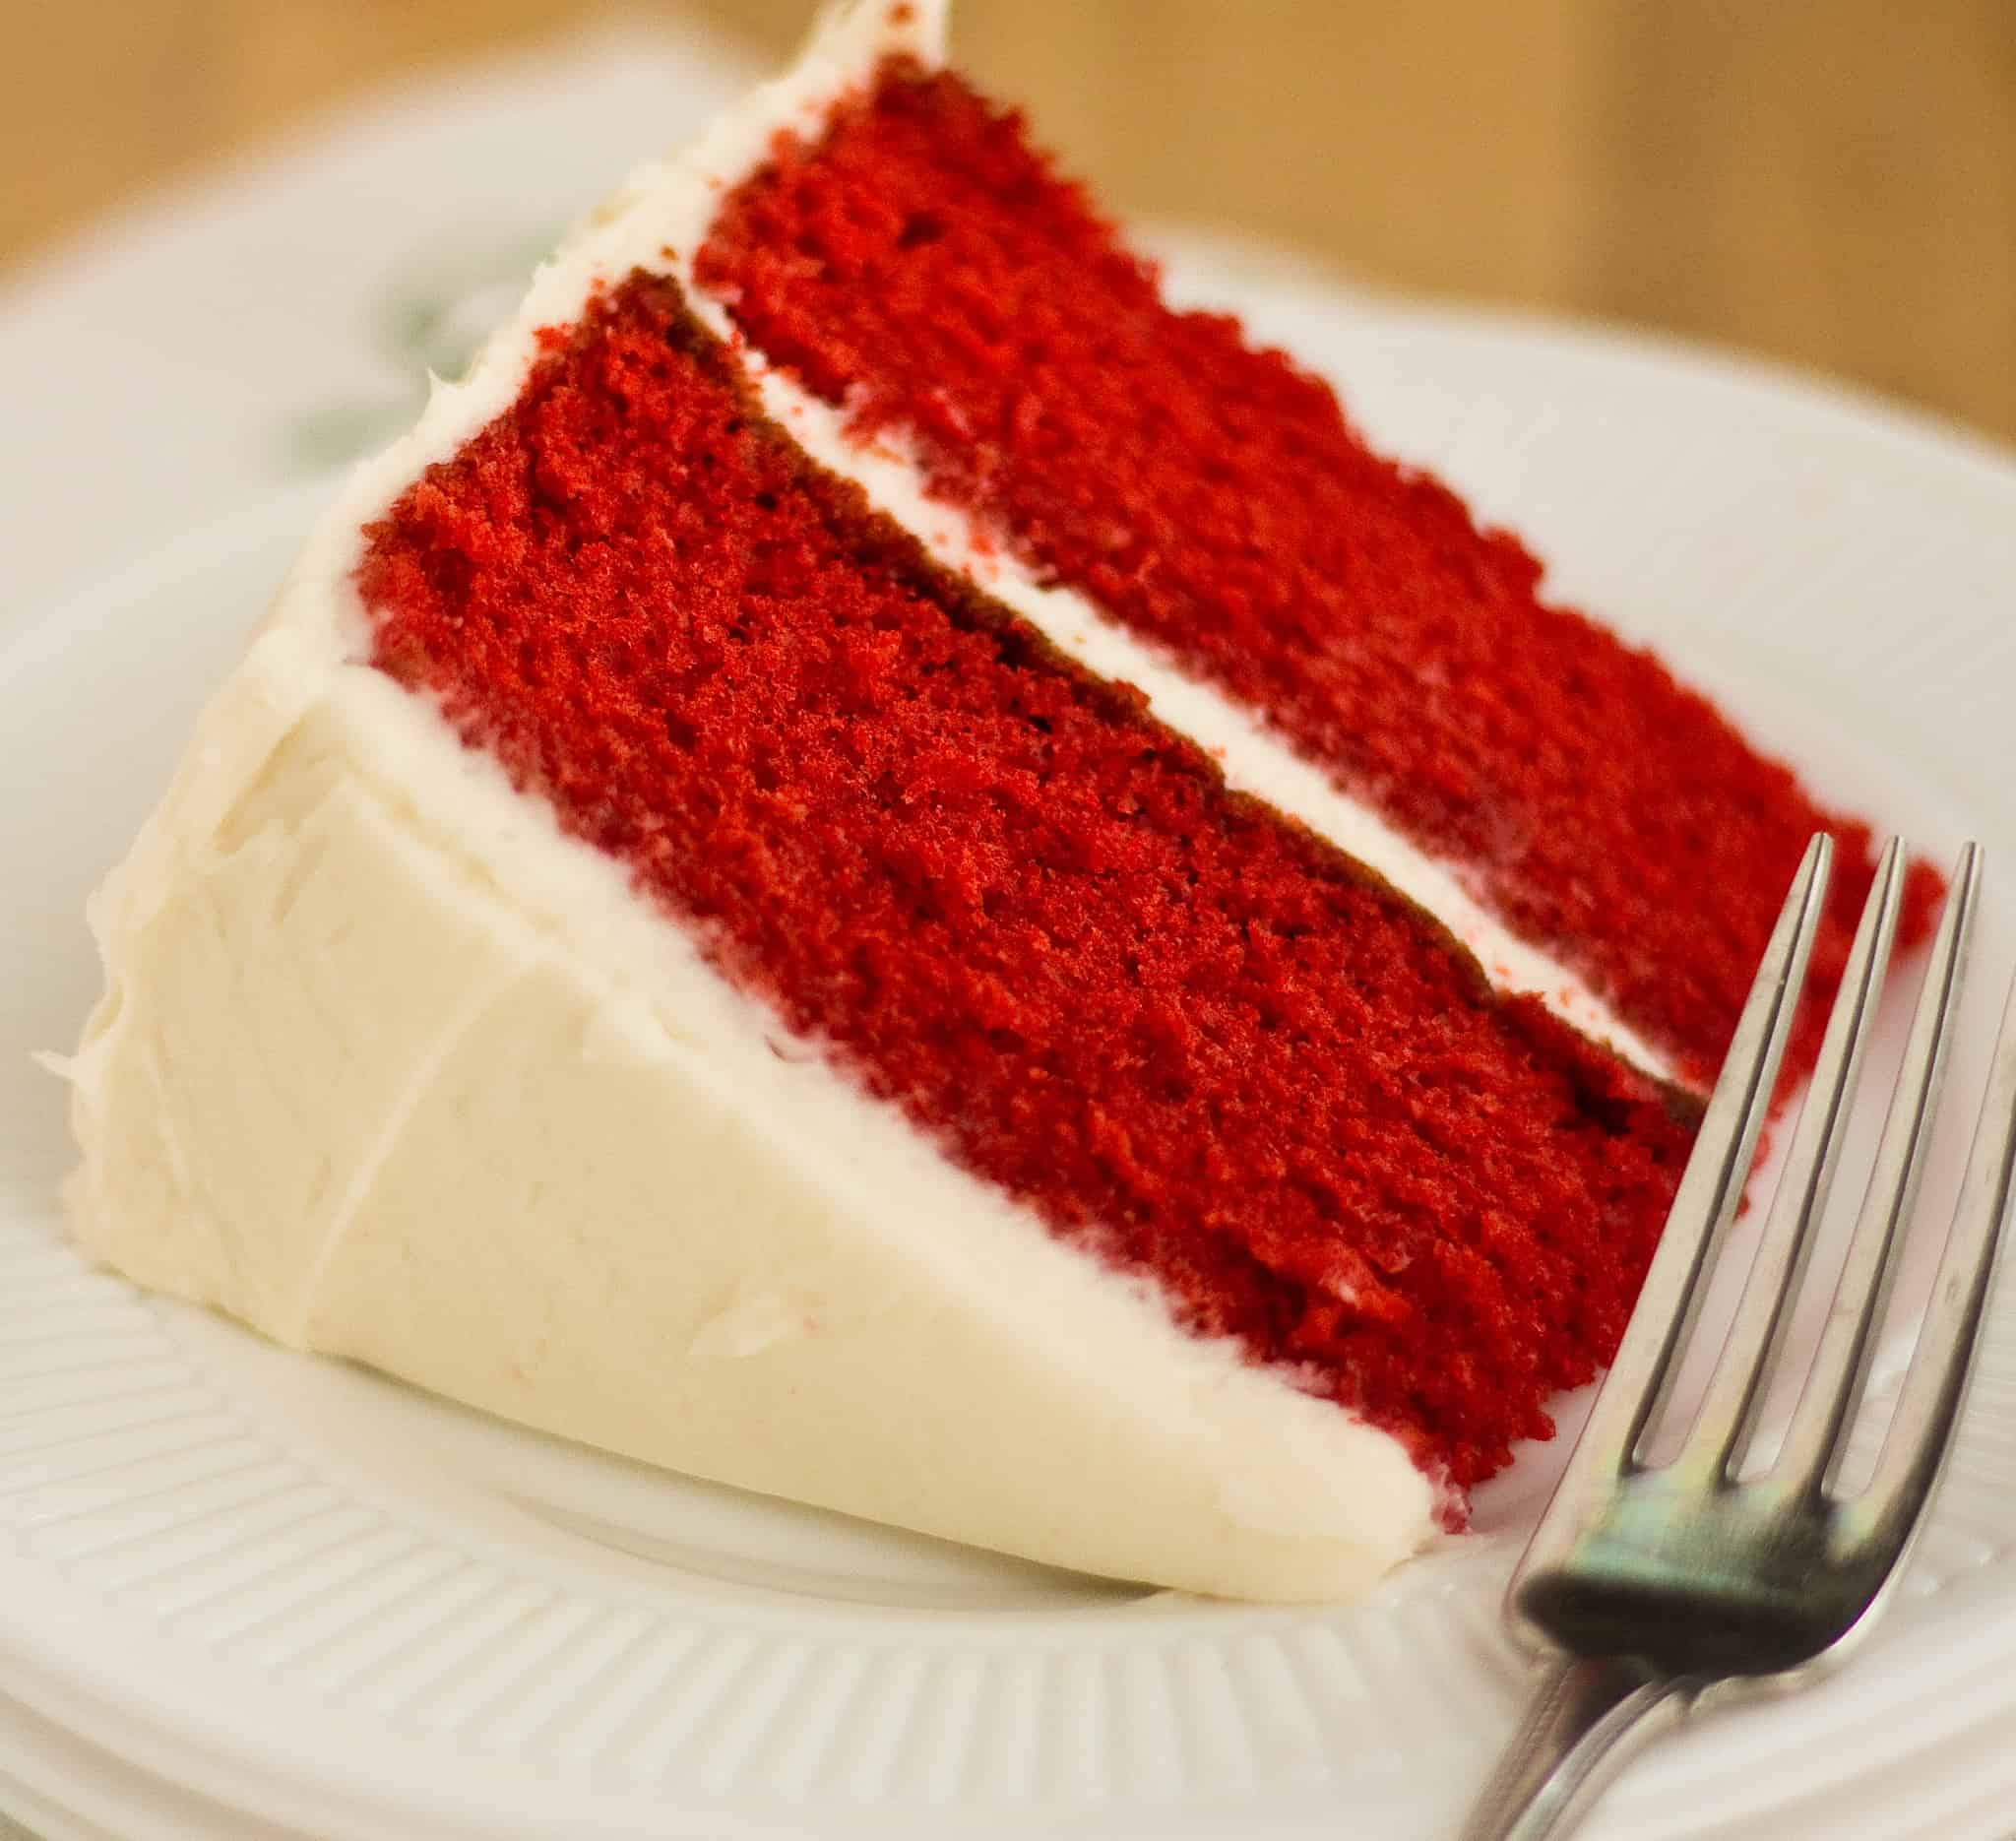 Most red velvet cakes are dense, but this recipe will give you the moistest red velvet cake that you have ever had. Plus it starts with a cake mix!